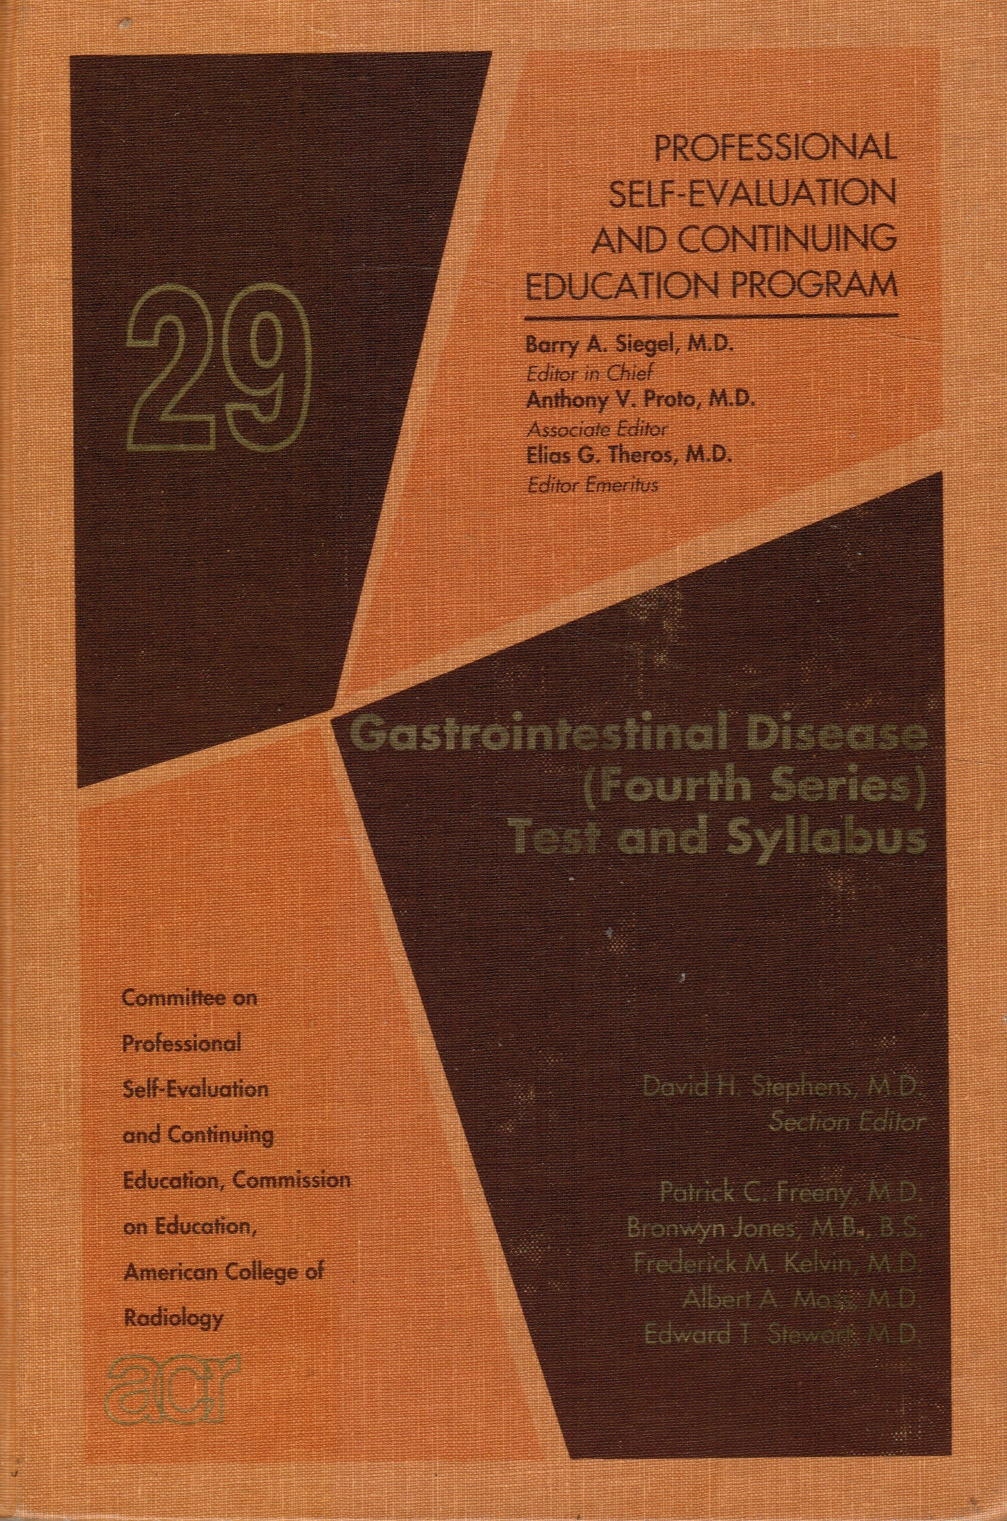 Image for Gastrointestinal Disease (Fourth Series) : Test and Syllabus (Professional Self-Evaluation and Continuing Education Program)